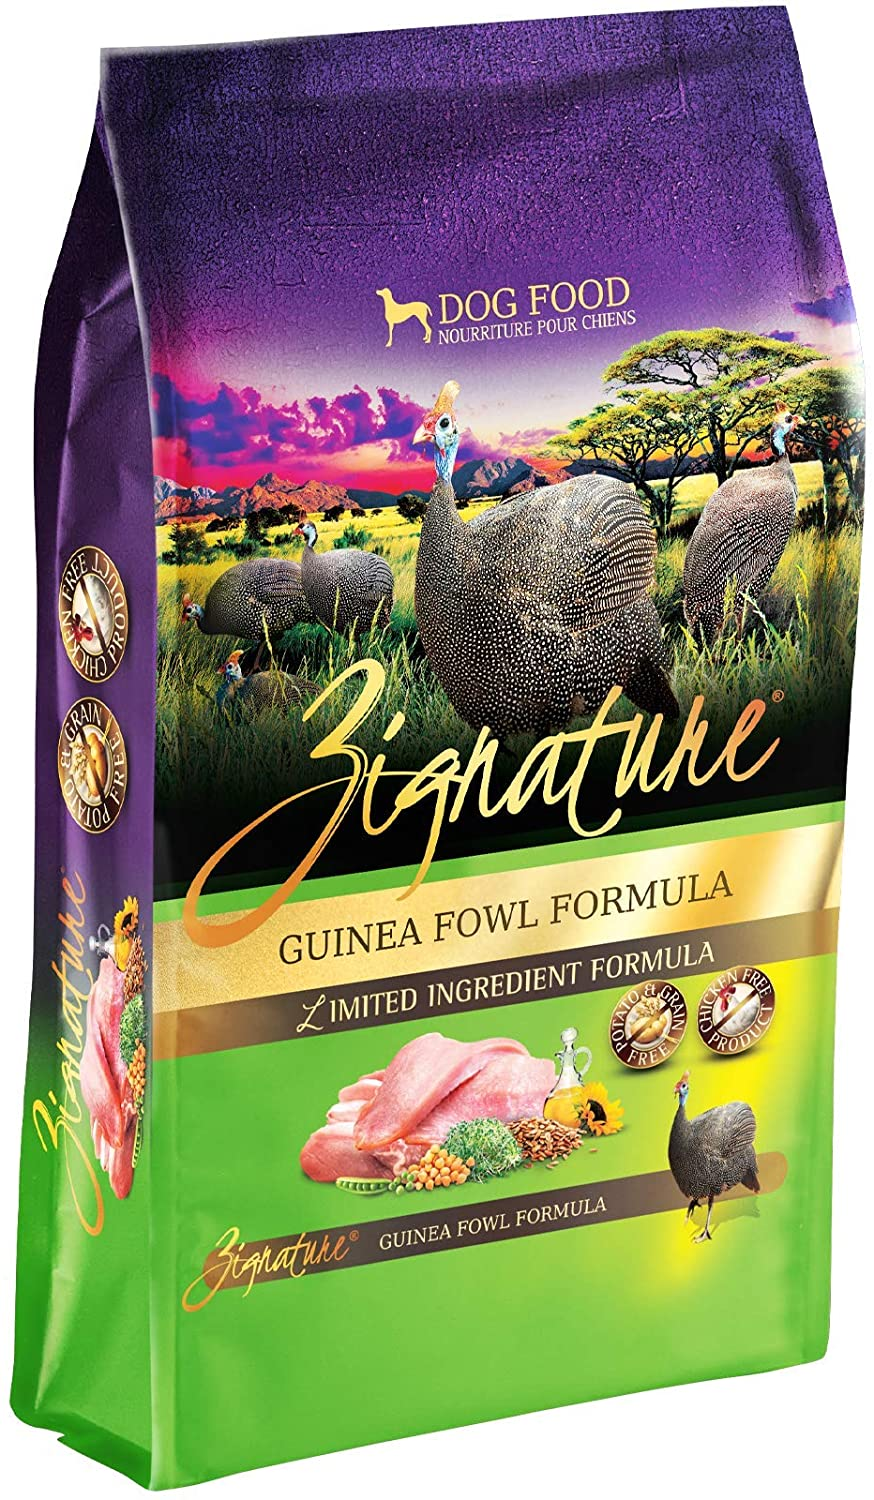 Zignature Guinea Fowl Formula Grain-Free Dry Dog Food 25lb